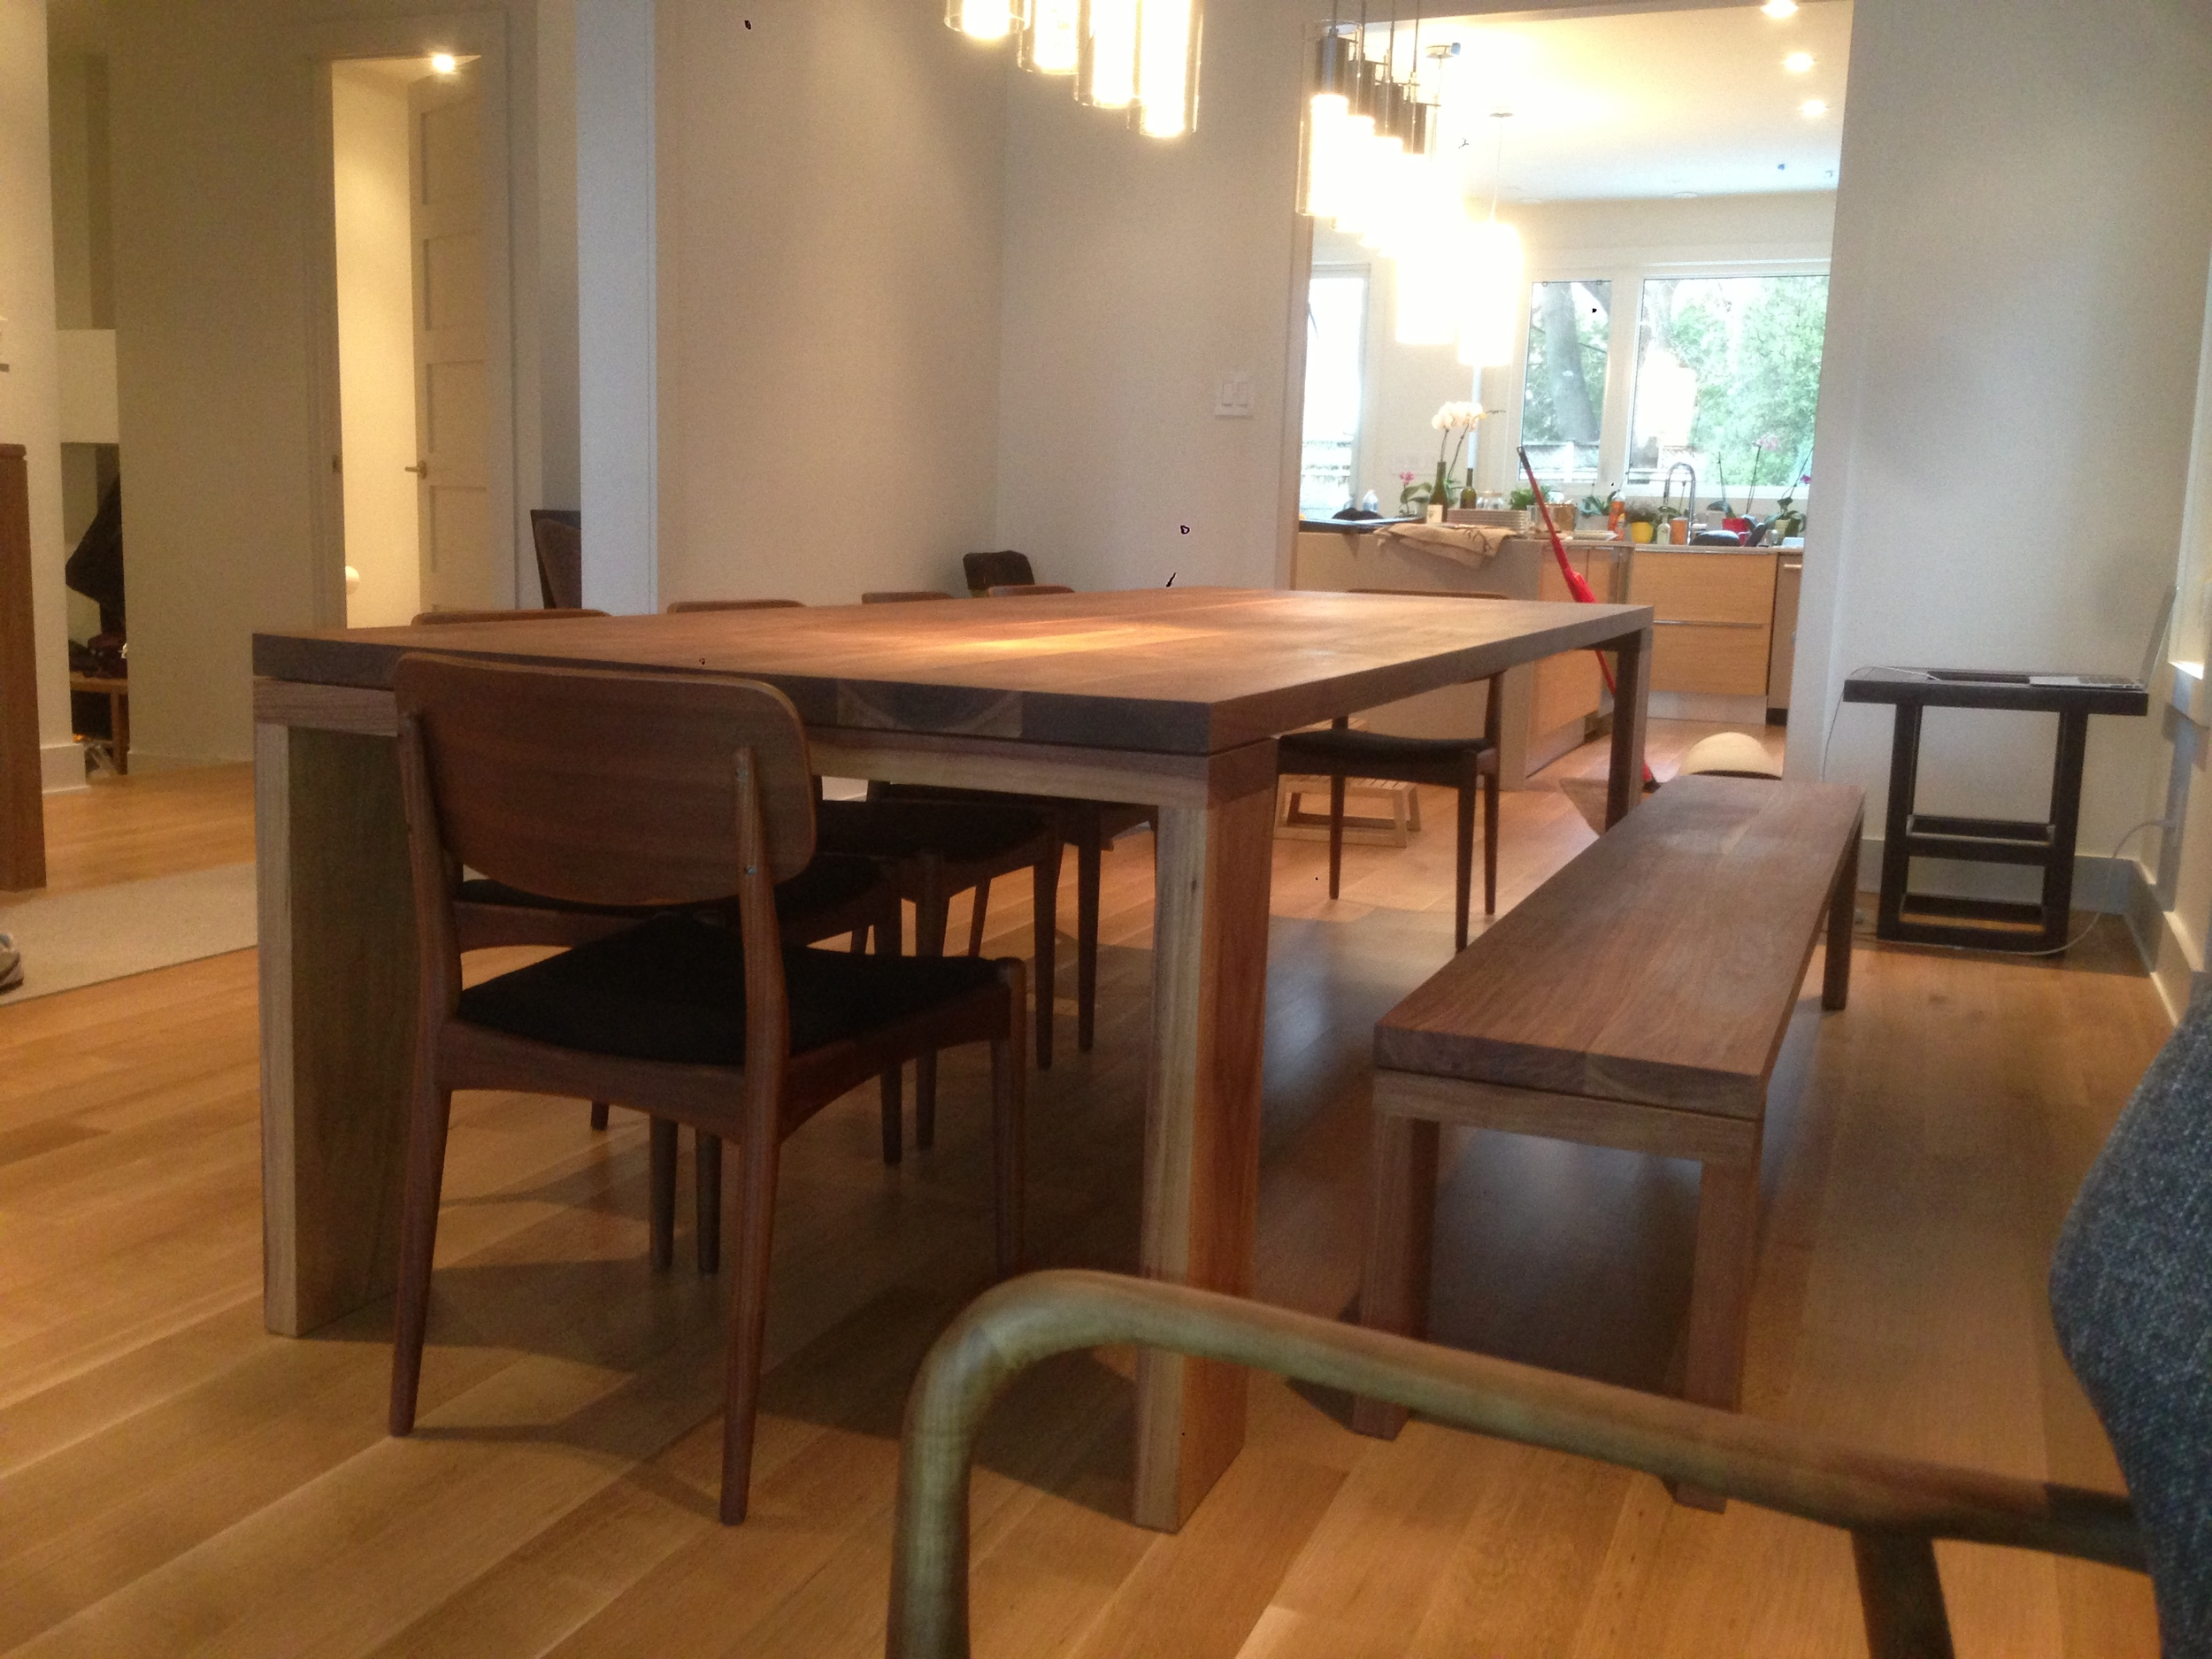 This Long Feast walnut table is 42 inches x 10 feet with a matching bench that is 8 feet long